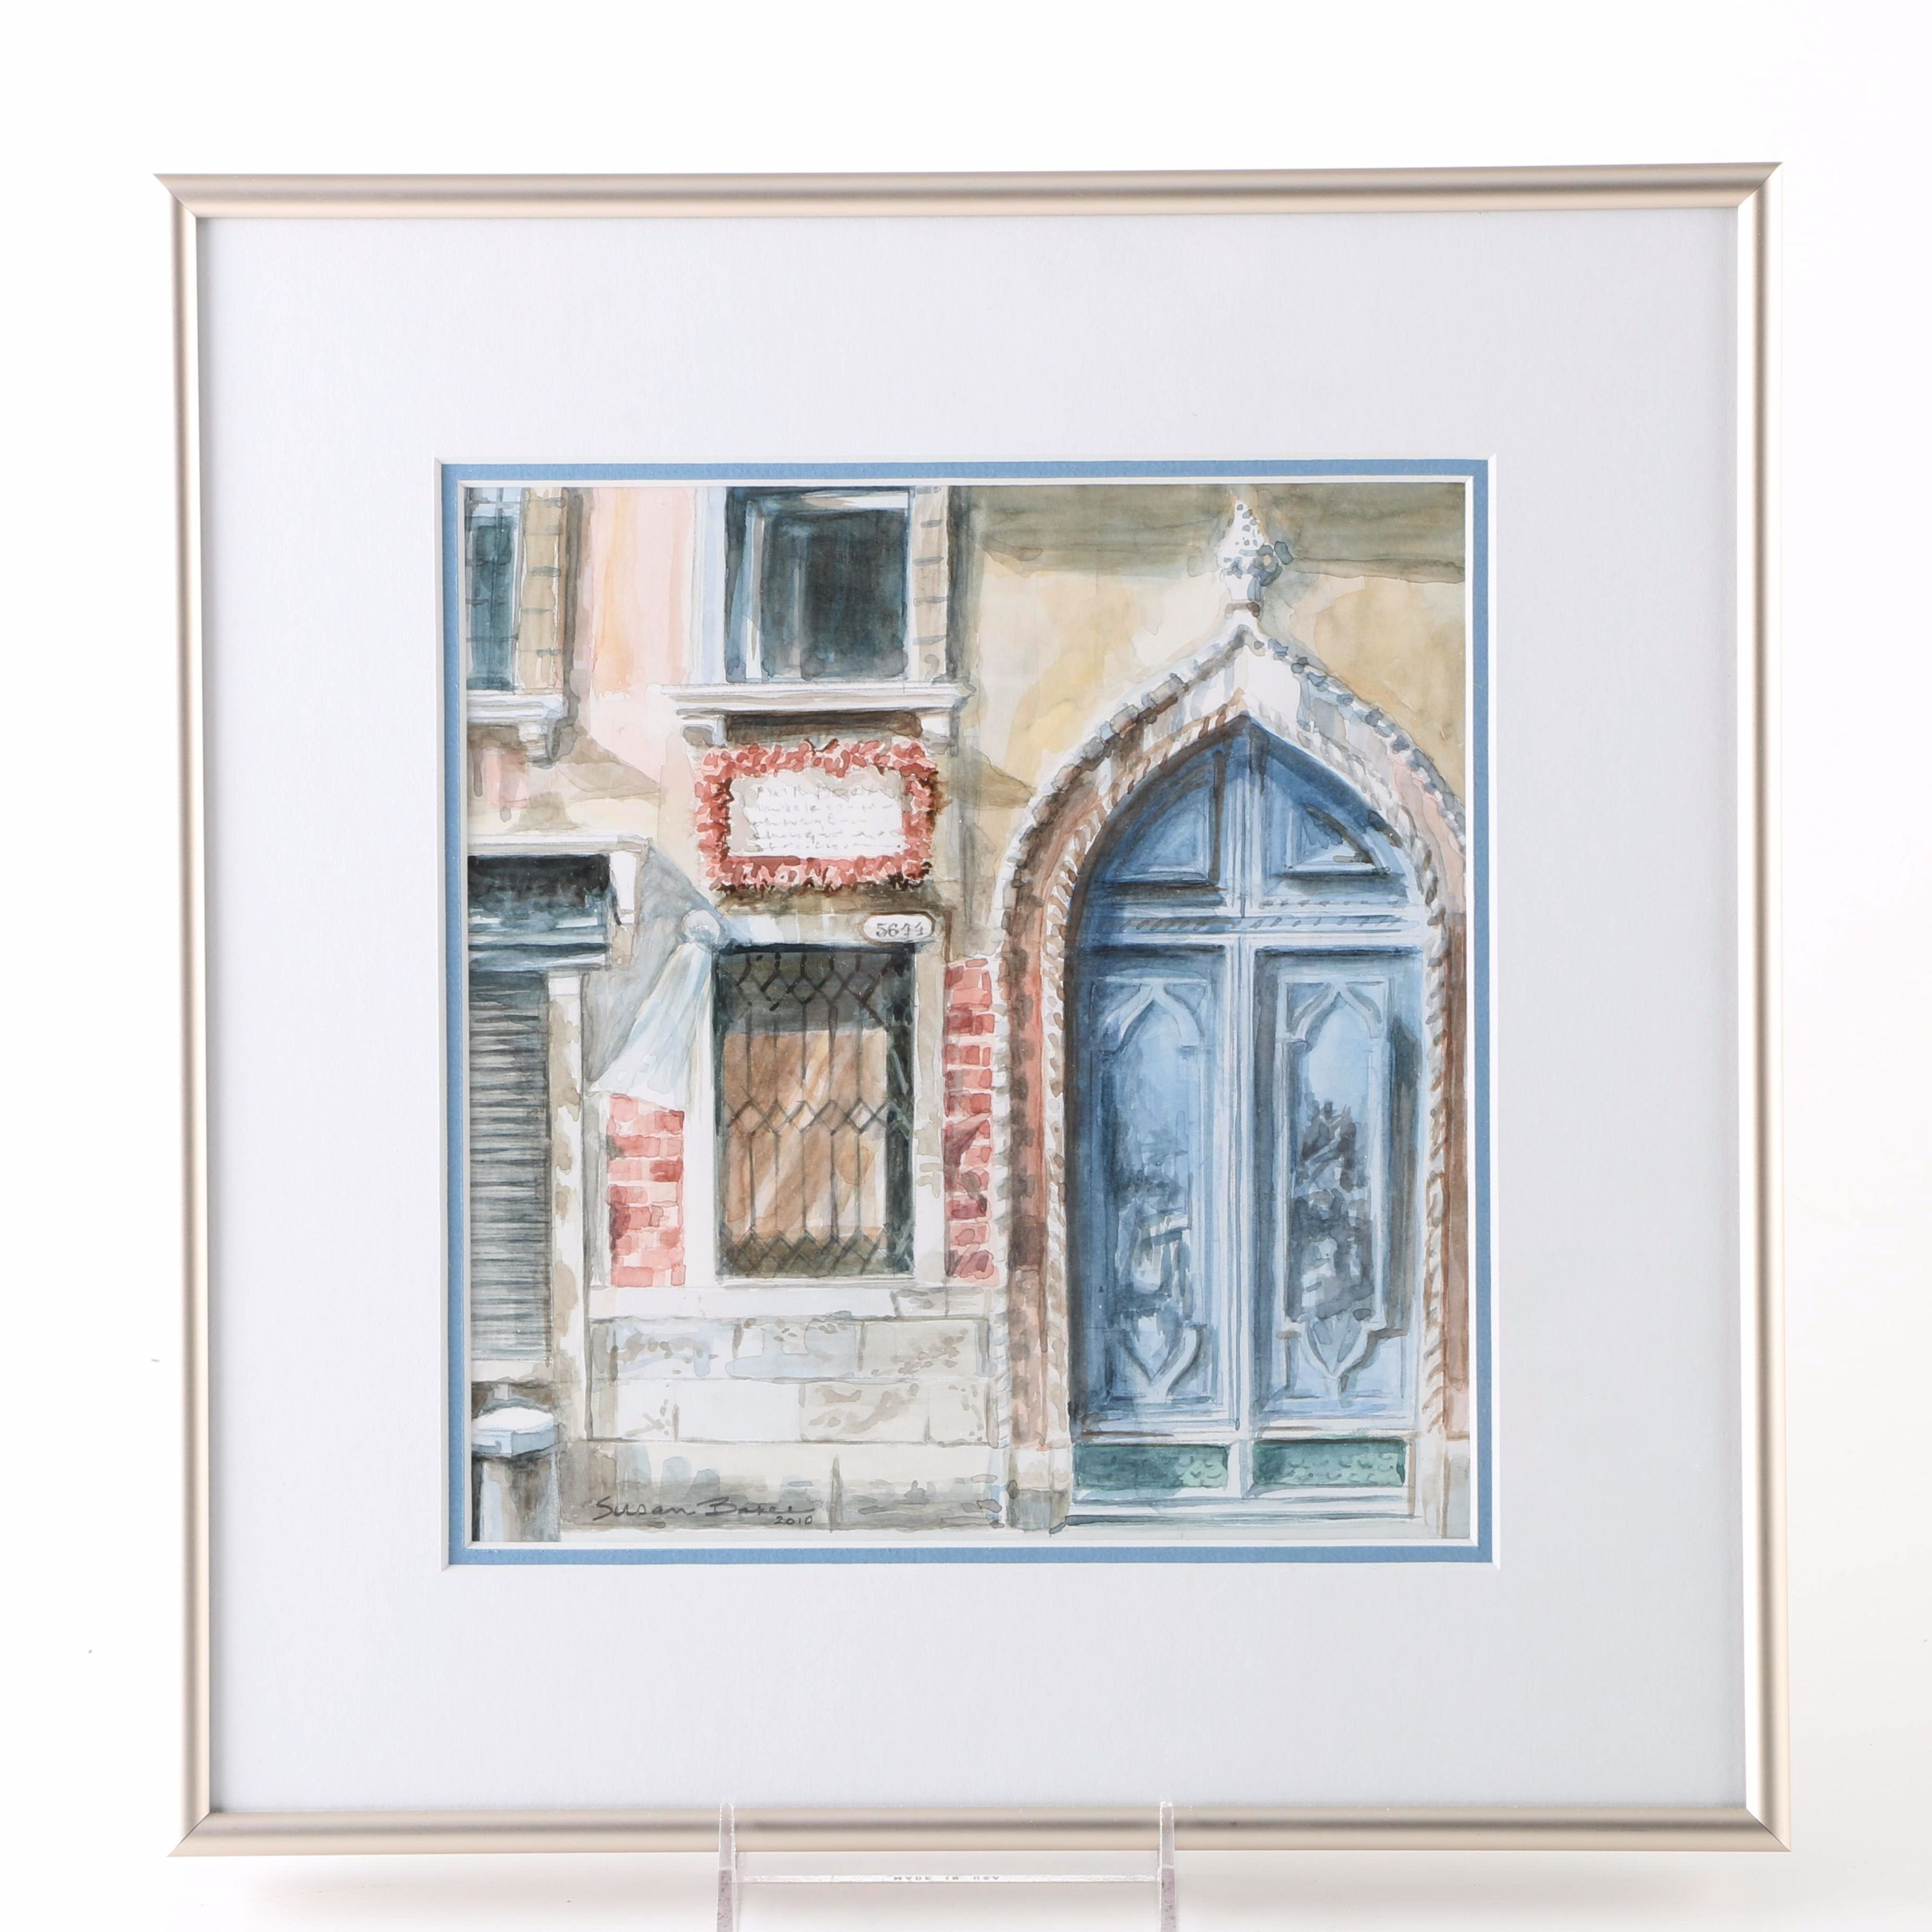 Framed Original Architectural Watercolor by Susan Baker